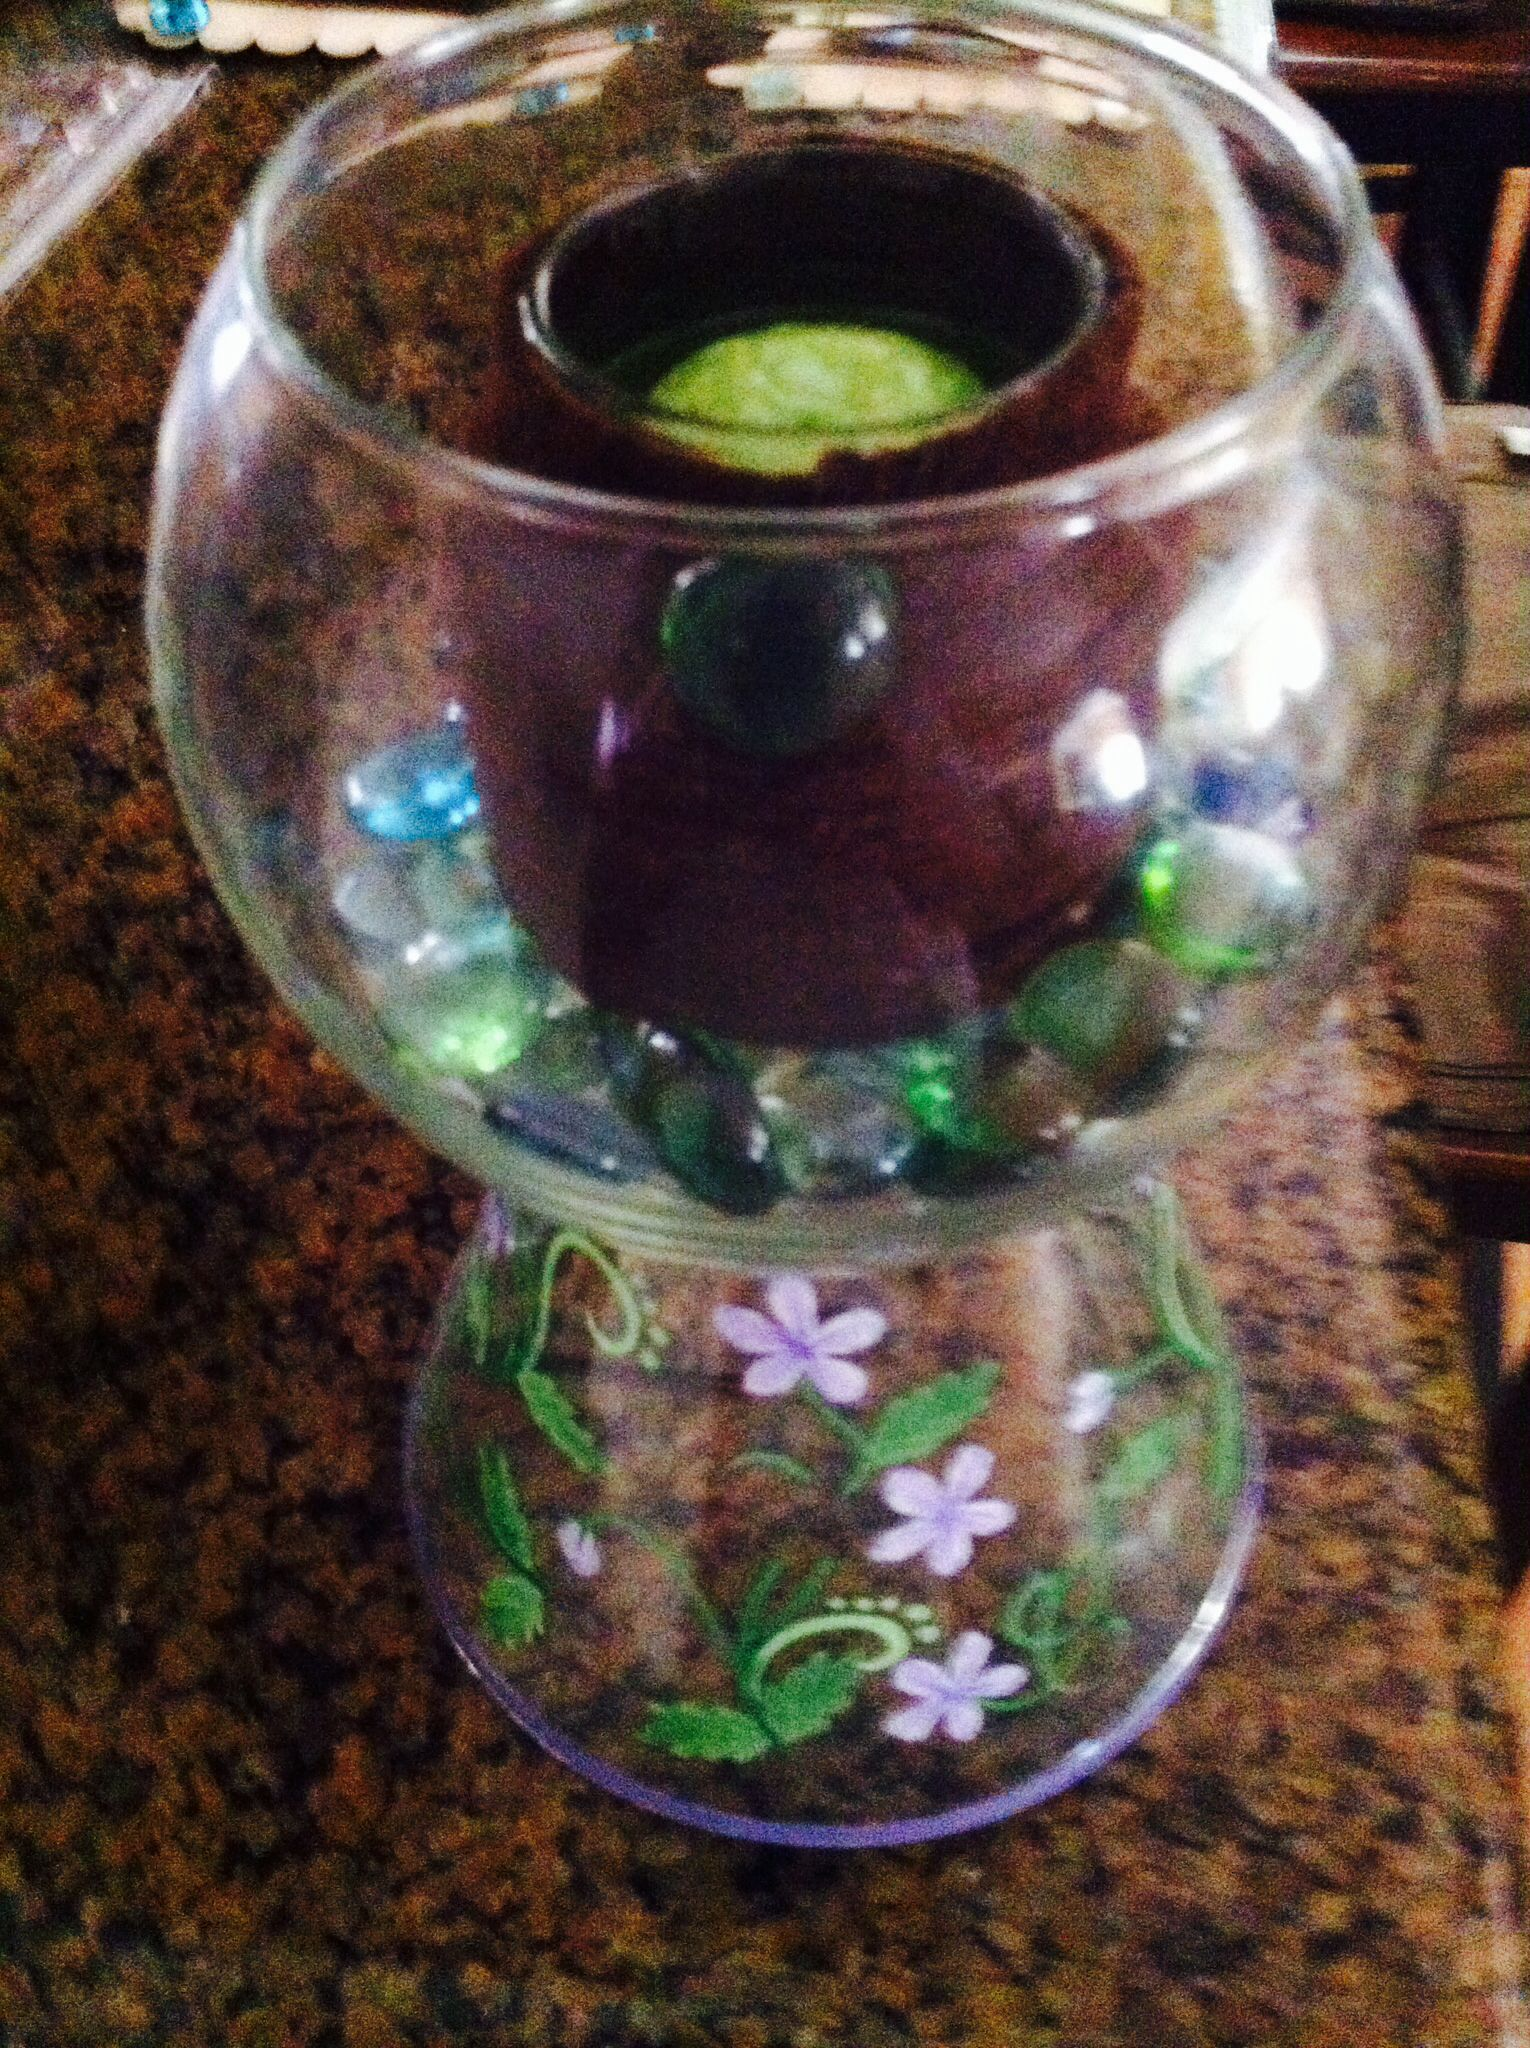 What To Put In A Bowl For Decoration Fun Home Decor Using A Glass Bowl Glued To A Glass Candle Cover